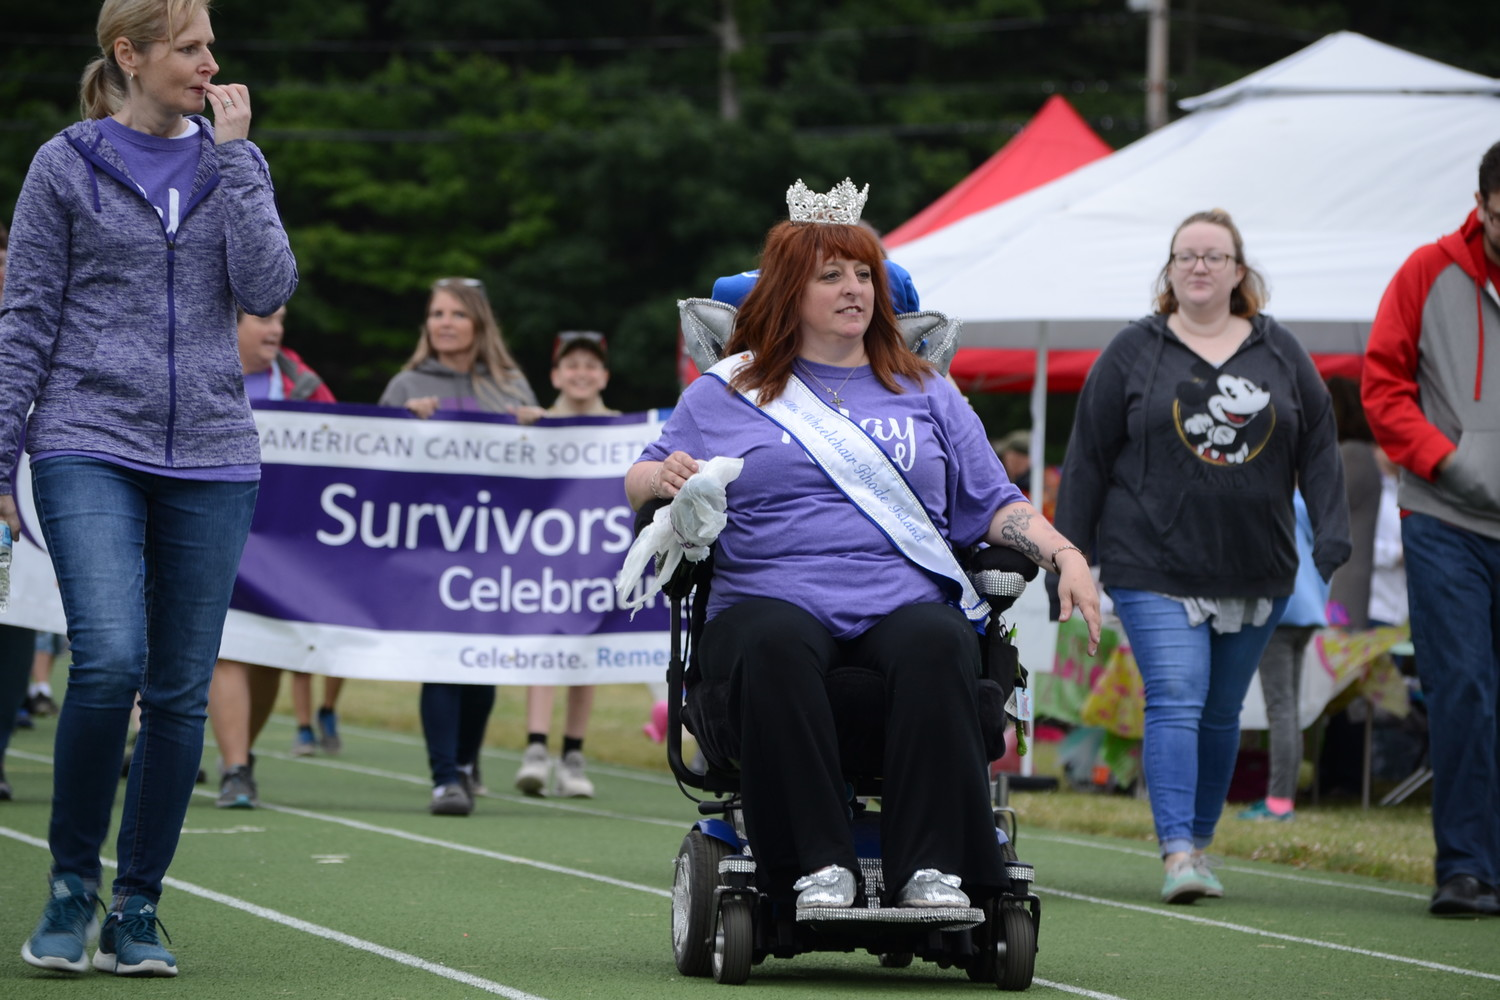 LEADING THE CHARGE: Pedersen, who has survived multiple bouts of both breast and bladder cancer, in addition to being paralyzed below the waist, led the survivor's lap during the Northern Rhode Island Relay for Life in Smithfield last Saturday.